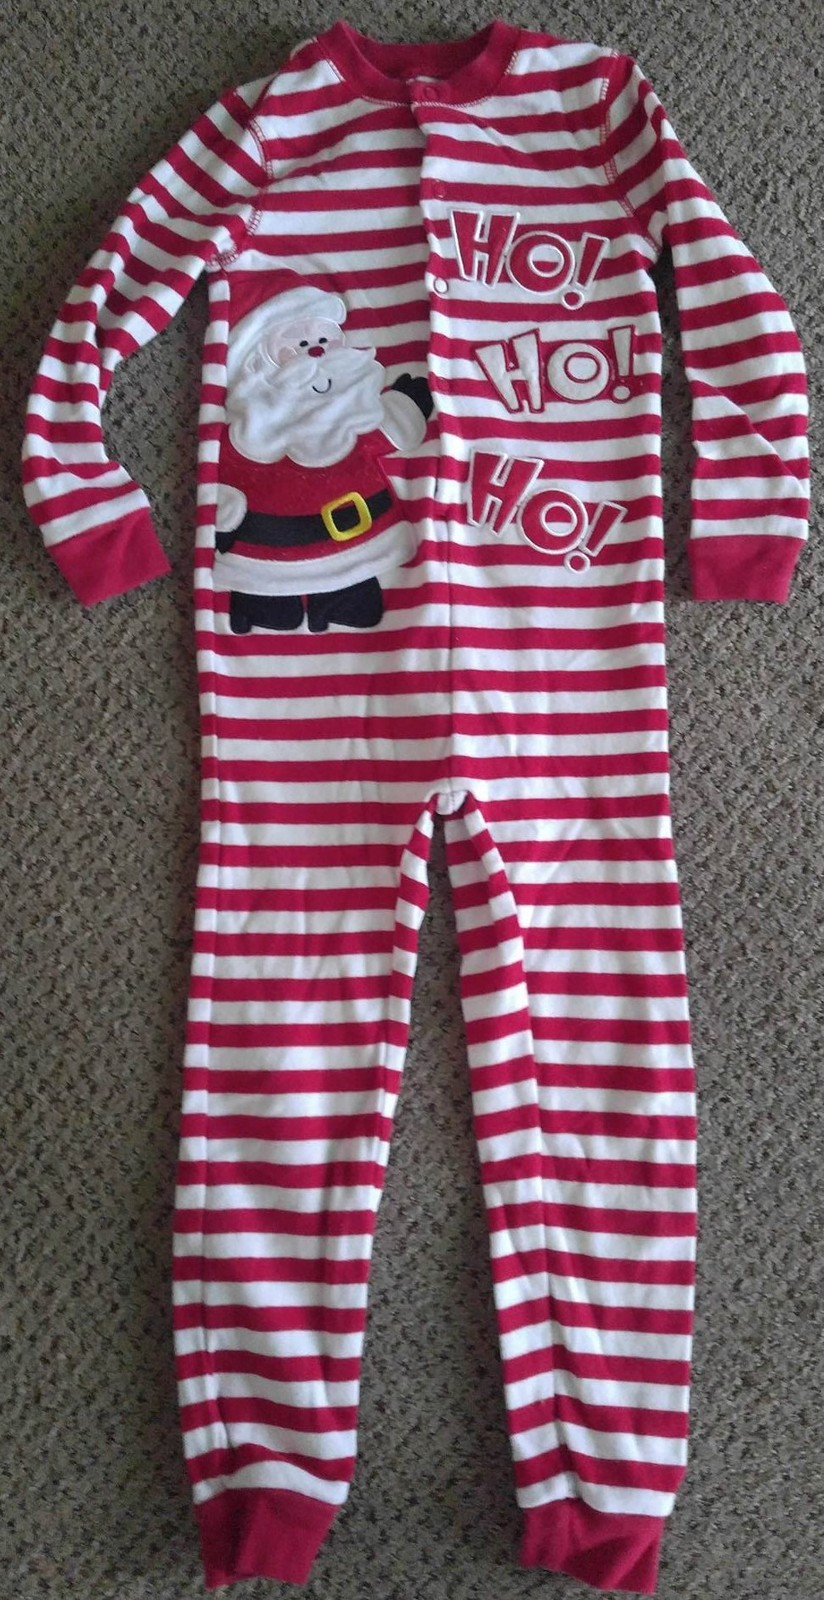 Bluelans Baby Kids Pajama Christmas Sleepwear Set Elk Deer Long Sleeve Top + Long Pants. Sold by Bluelans. $ $ Big Feet Pajamas Kids Fleece Christmas One Piece Footed Pajamas Sleeper. Disney Toddler Girls Pink Flannel Minnie Mouse Christmas Holiday Nightgown Gown 4T.